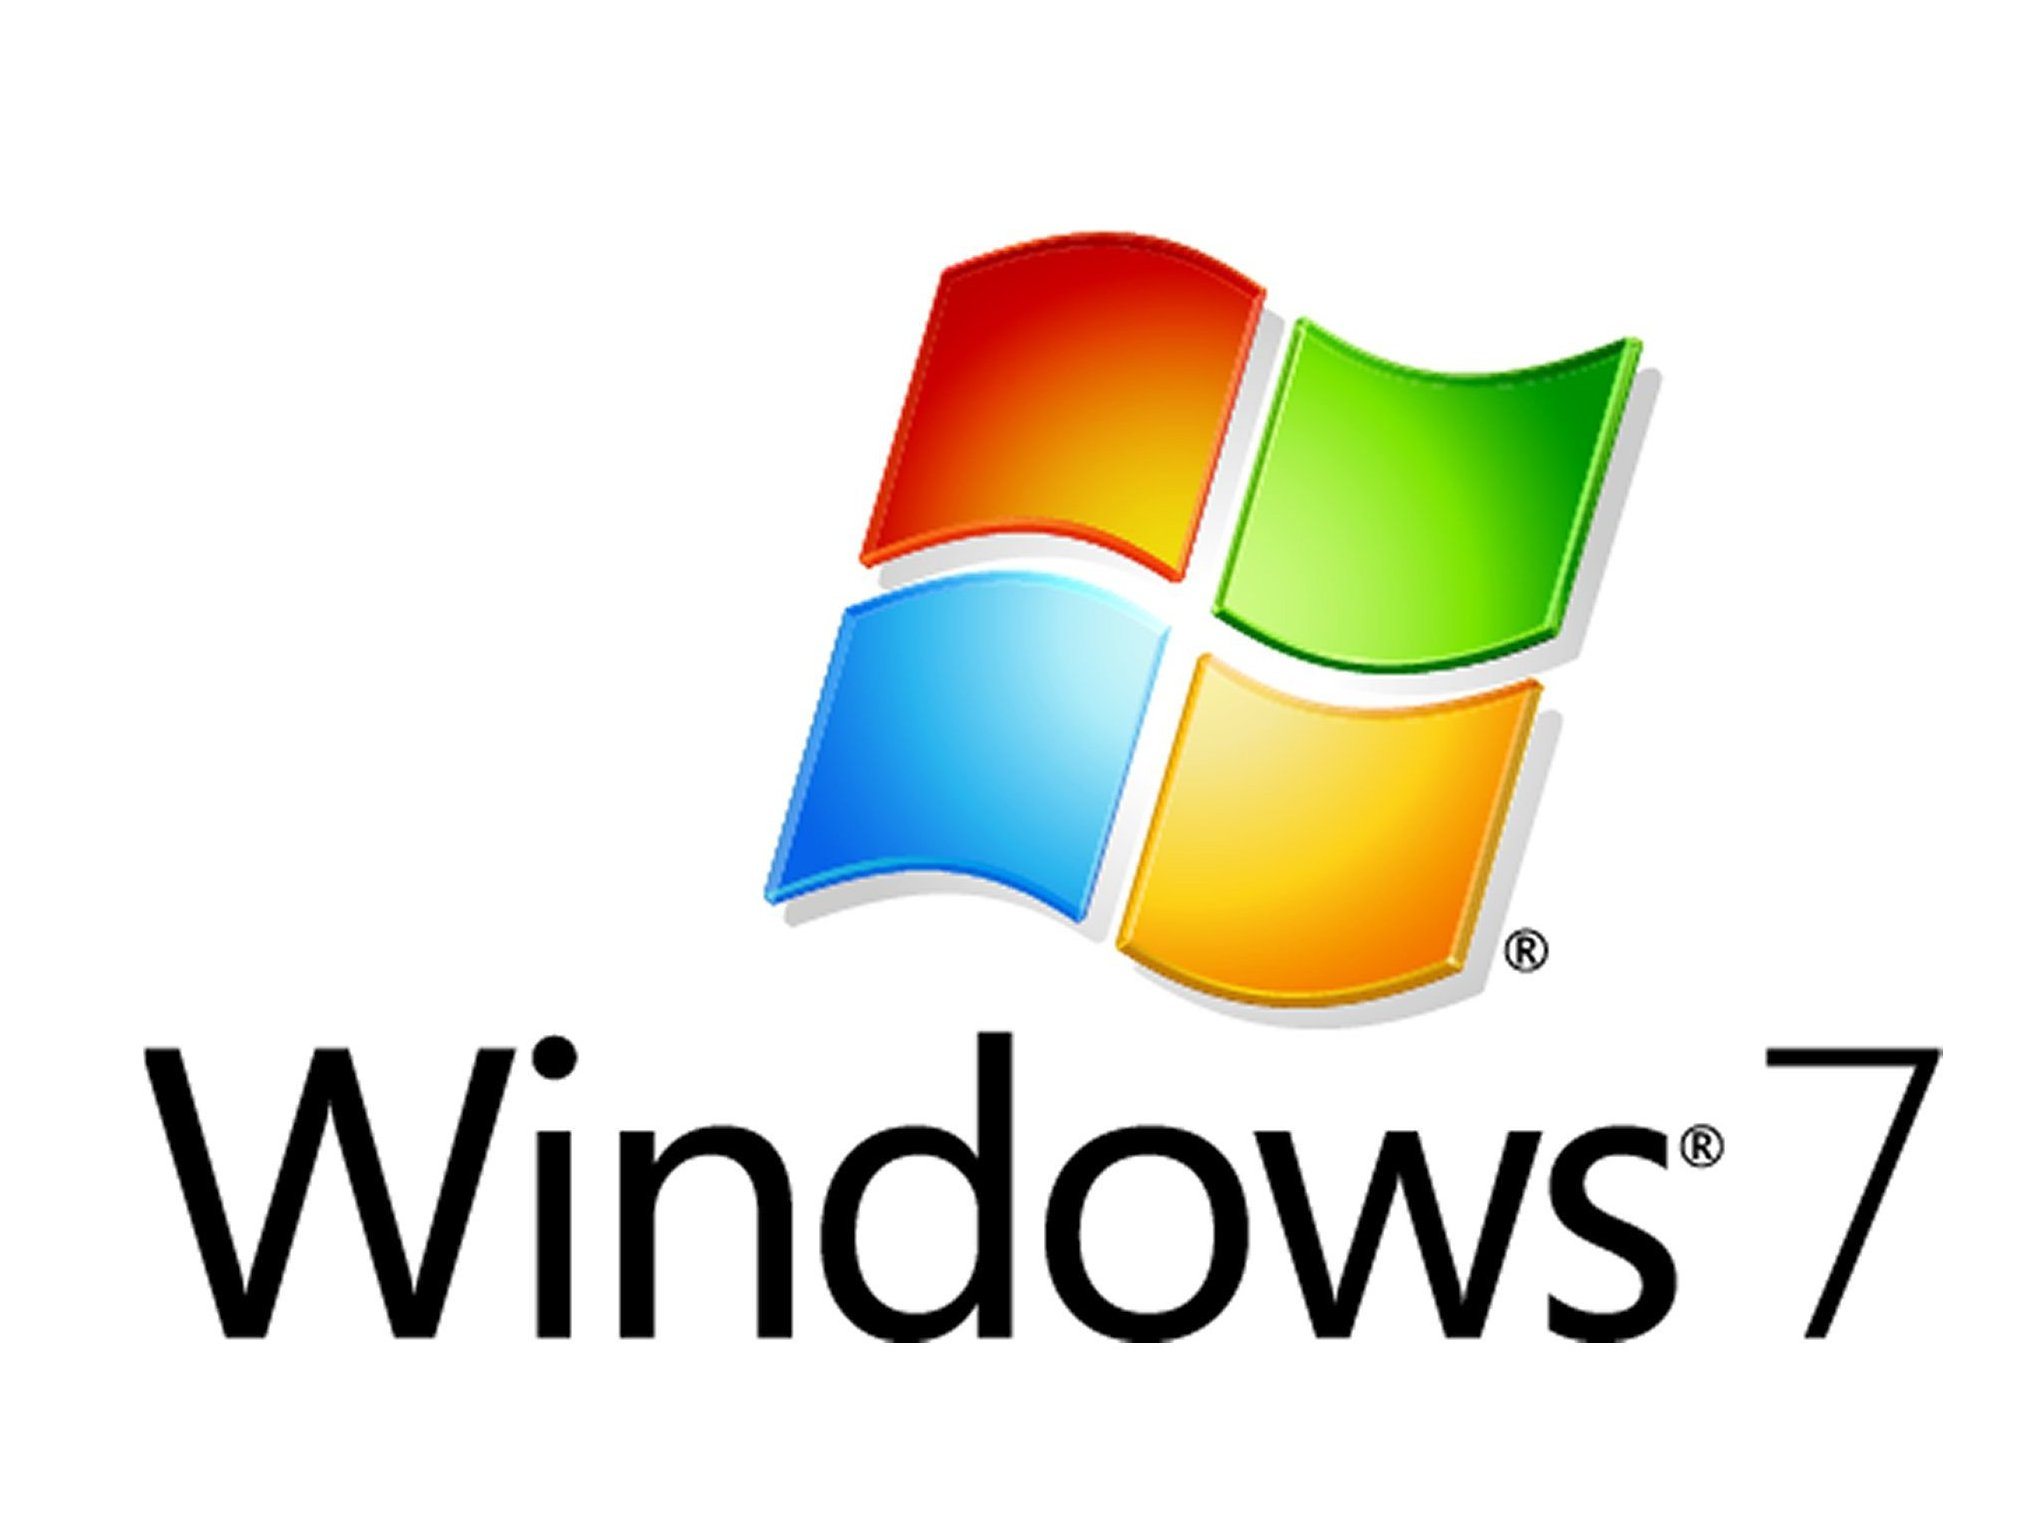 Windows 7 Cliparts